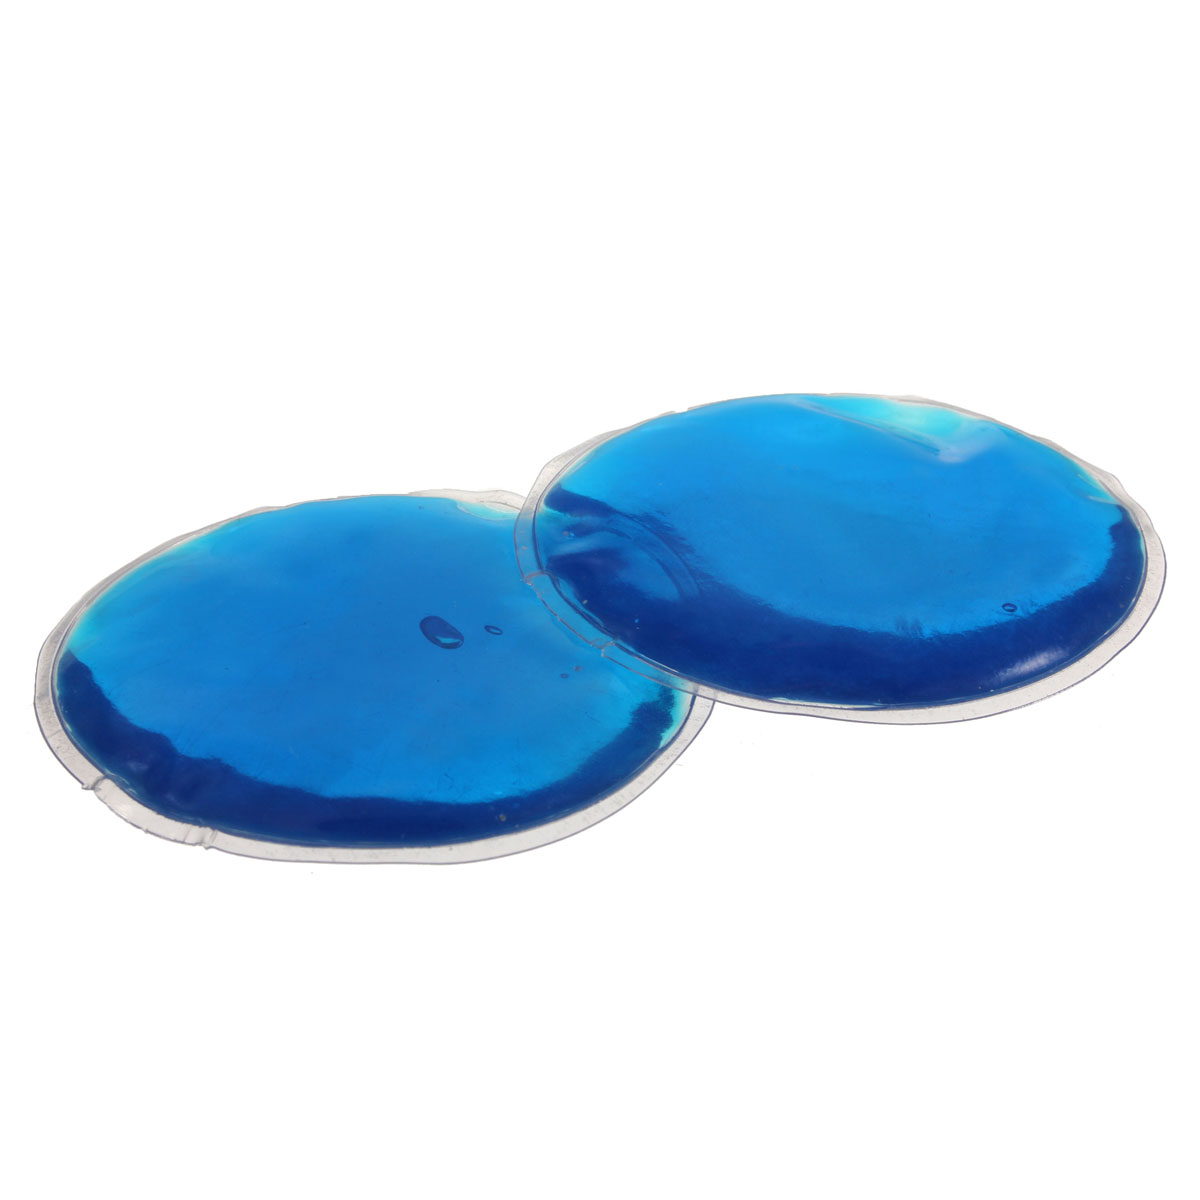 2Pcs Pain Relief Sleeping Relaxing Cooling Or Heat Gel Pads for